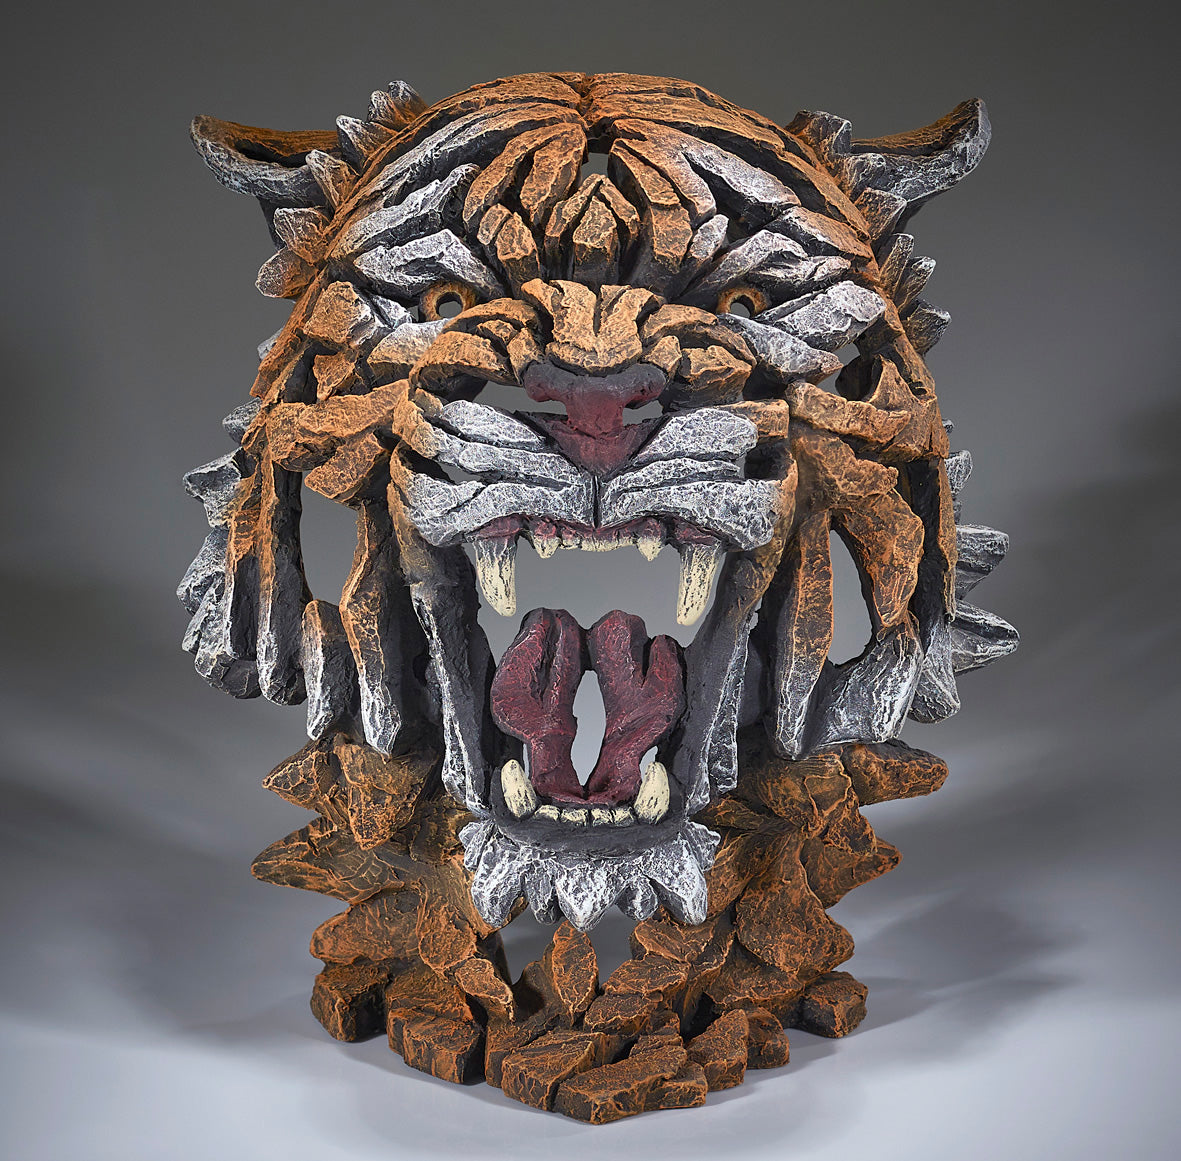 Edge Sculpture Tiger - Bengal by Matt Buckley